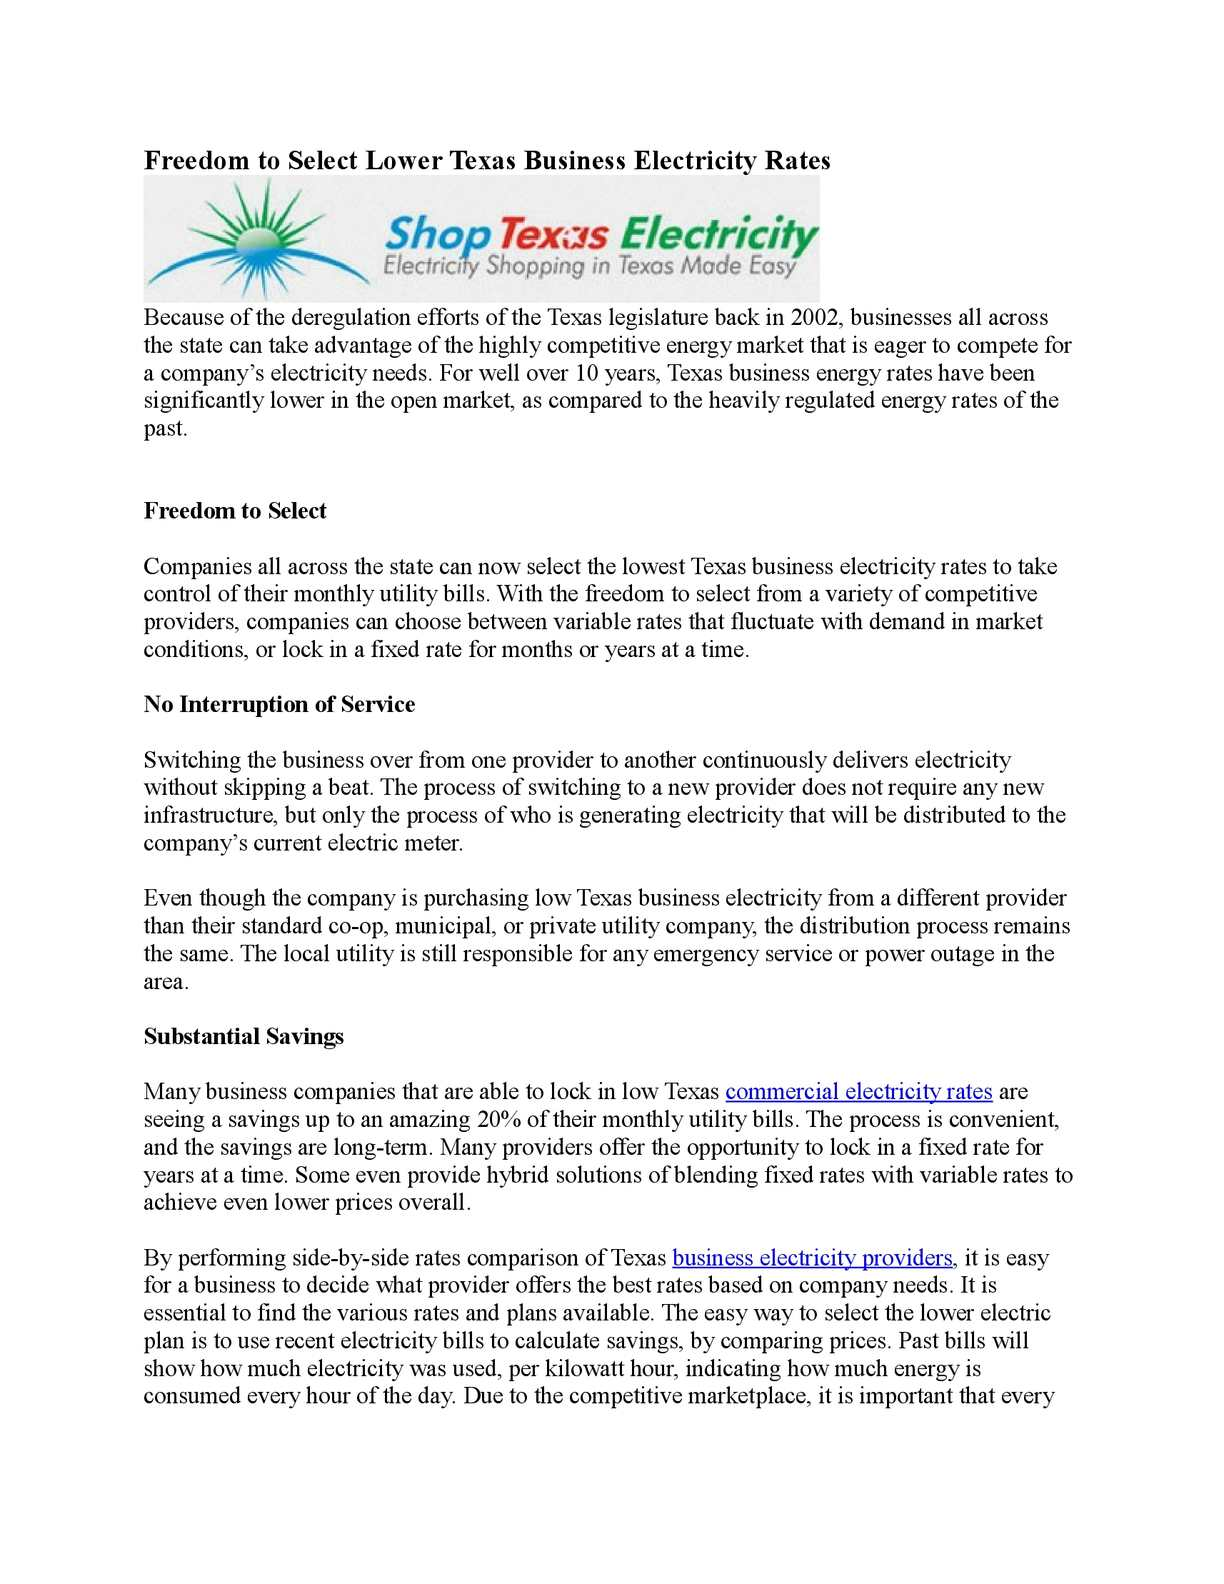 Calaméo - Freedom to Select Lower Texas Business Electricity Rates